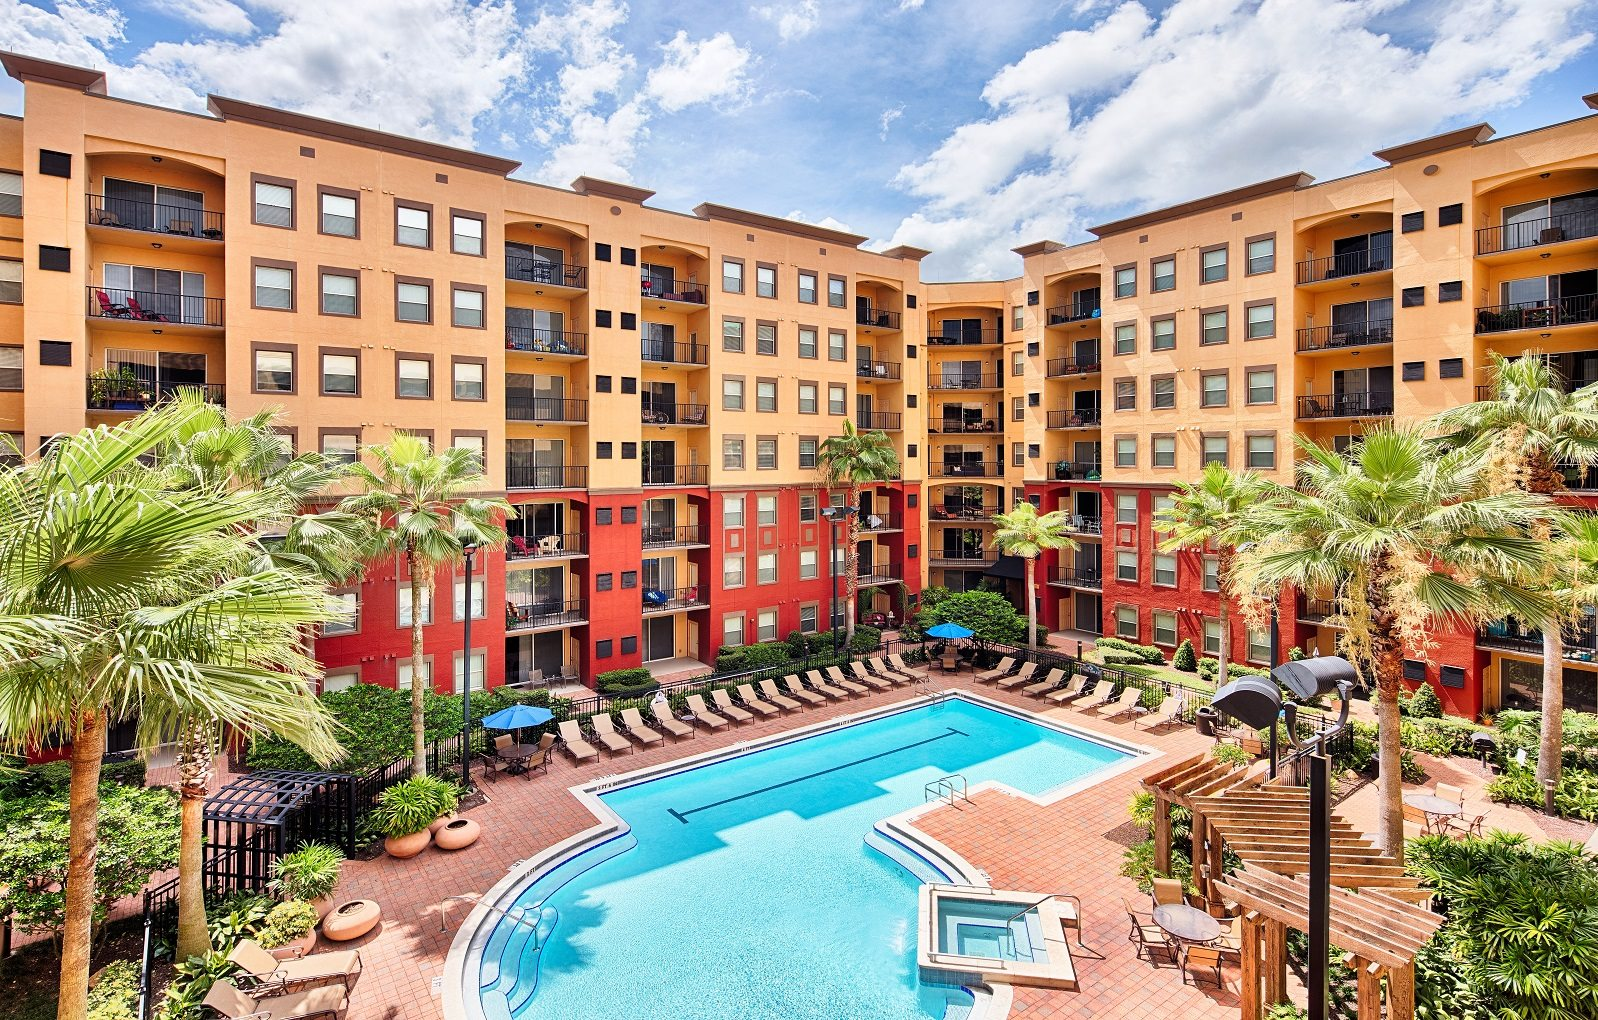 1 2 3 Bedroom Apartments The Lofts At Uptown Altamonte